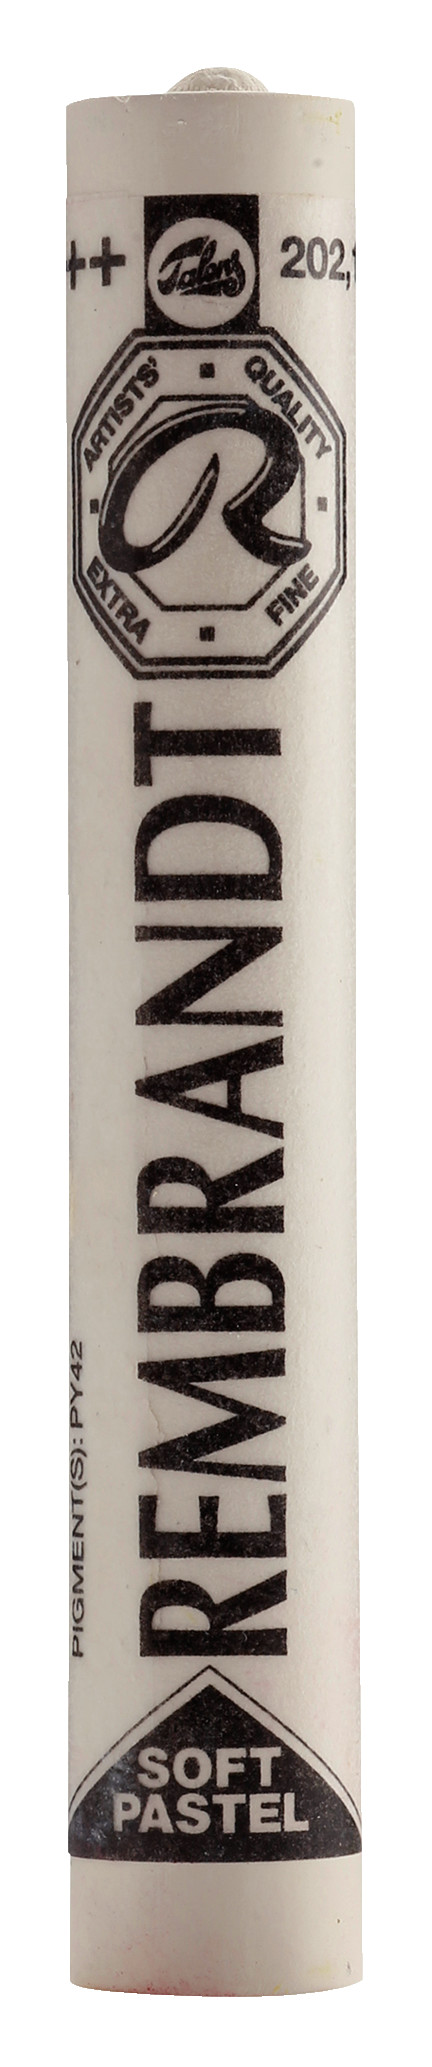 Rembrandt Soft Pastel Round Full Stick Deep Yellow(12) (202.12)